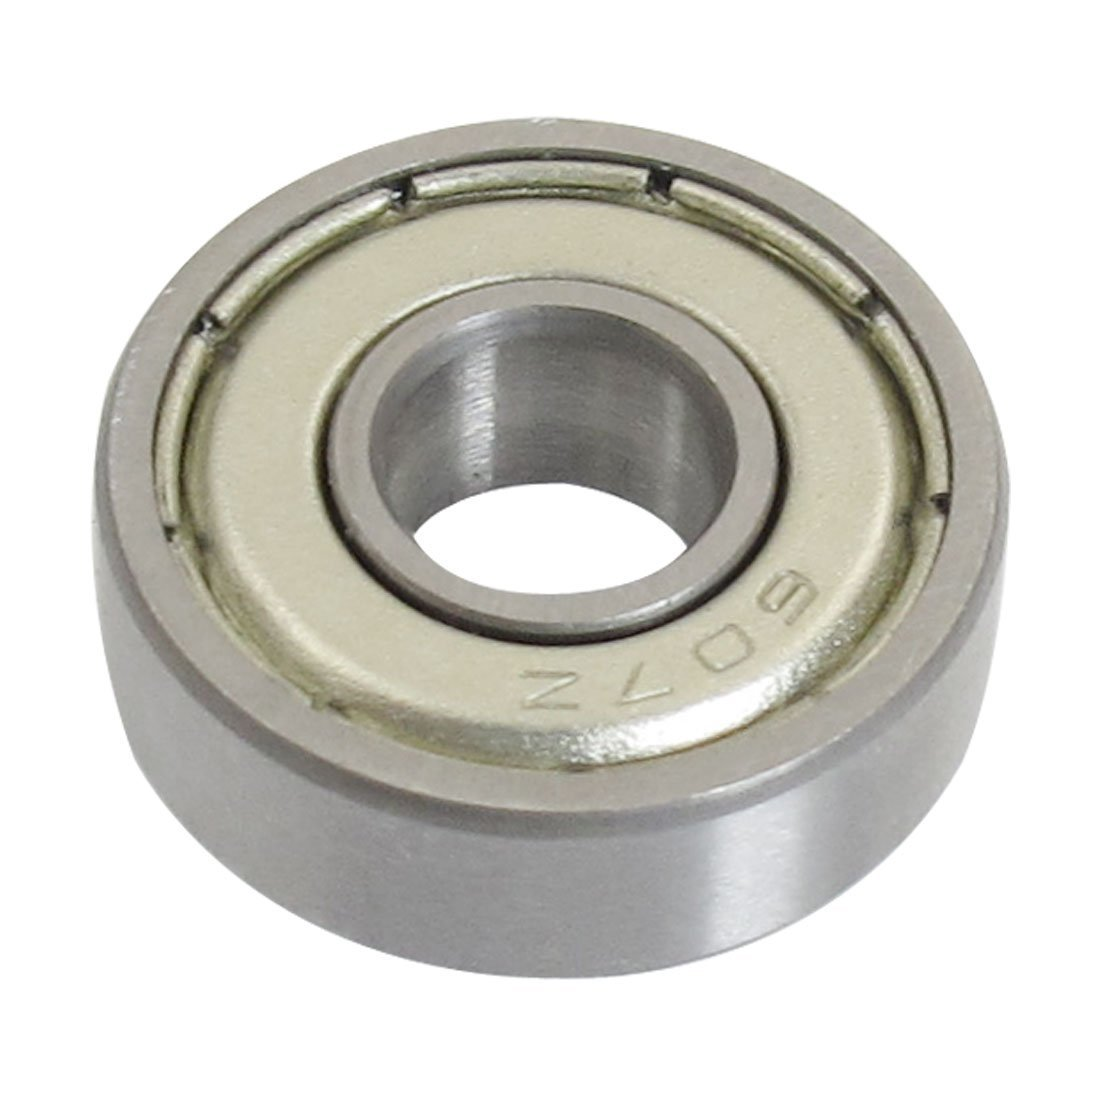 uxcell 607Z 7 x 19 x 6mm Double Shielded Deep Groove Ball Bearings 5 Pcs